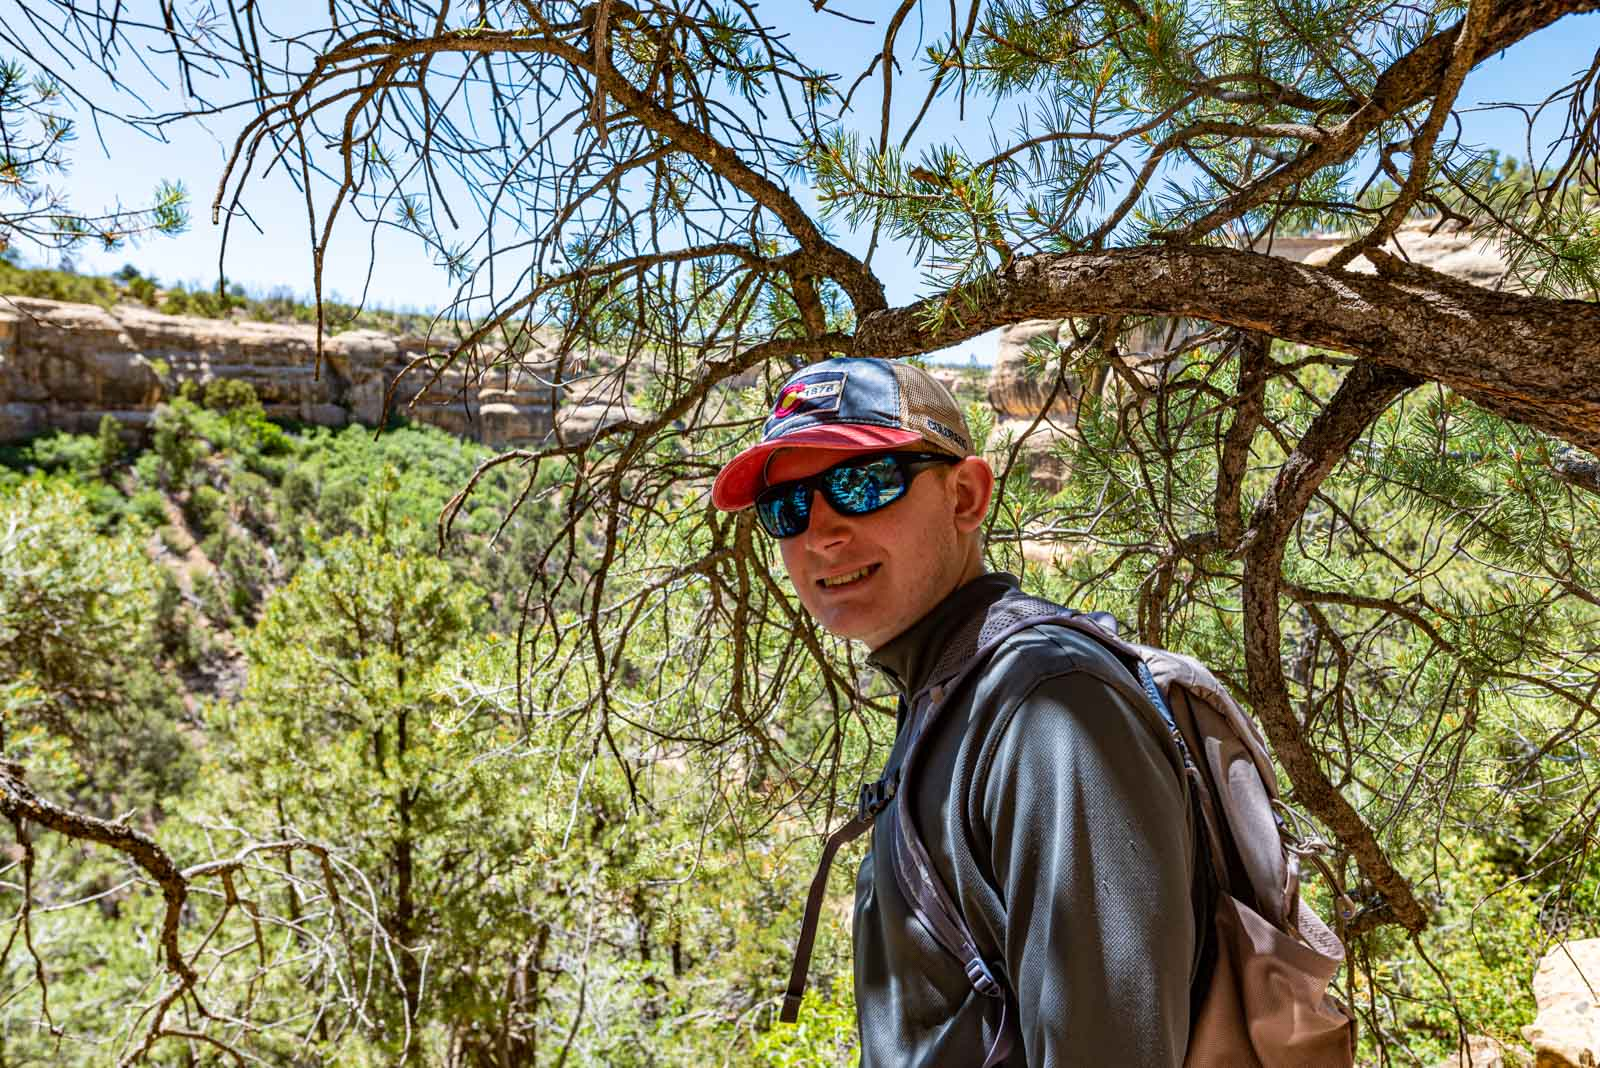 Starting back up the trail out of the canyon